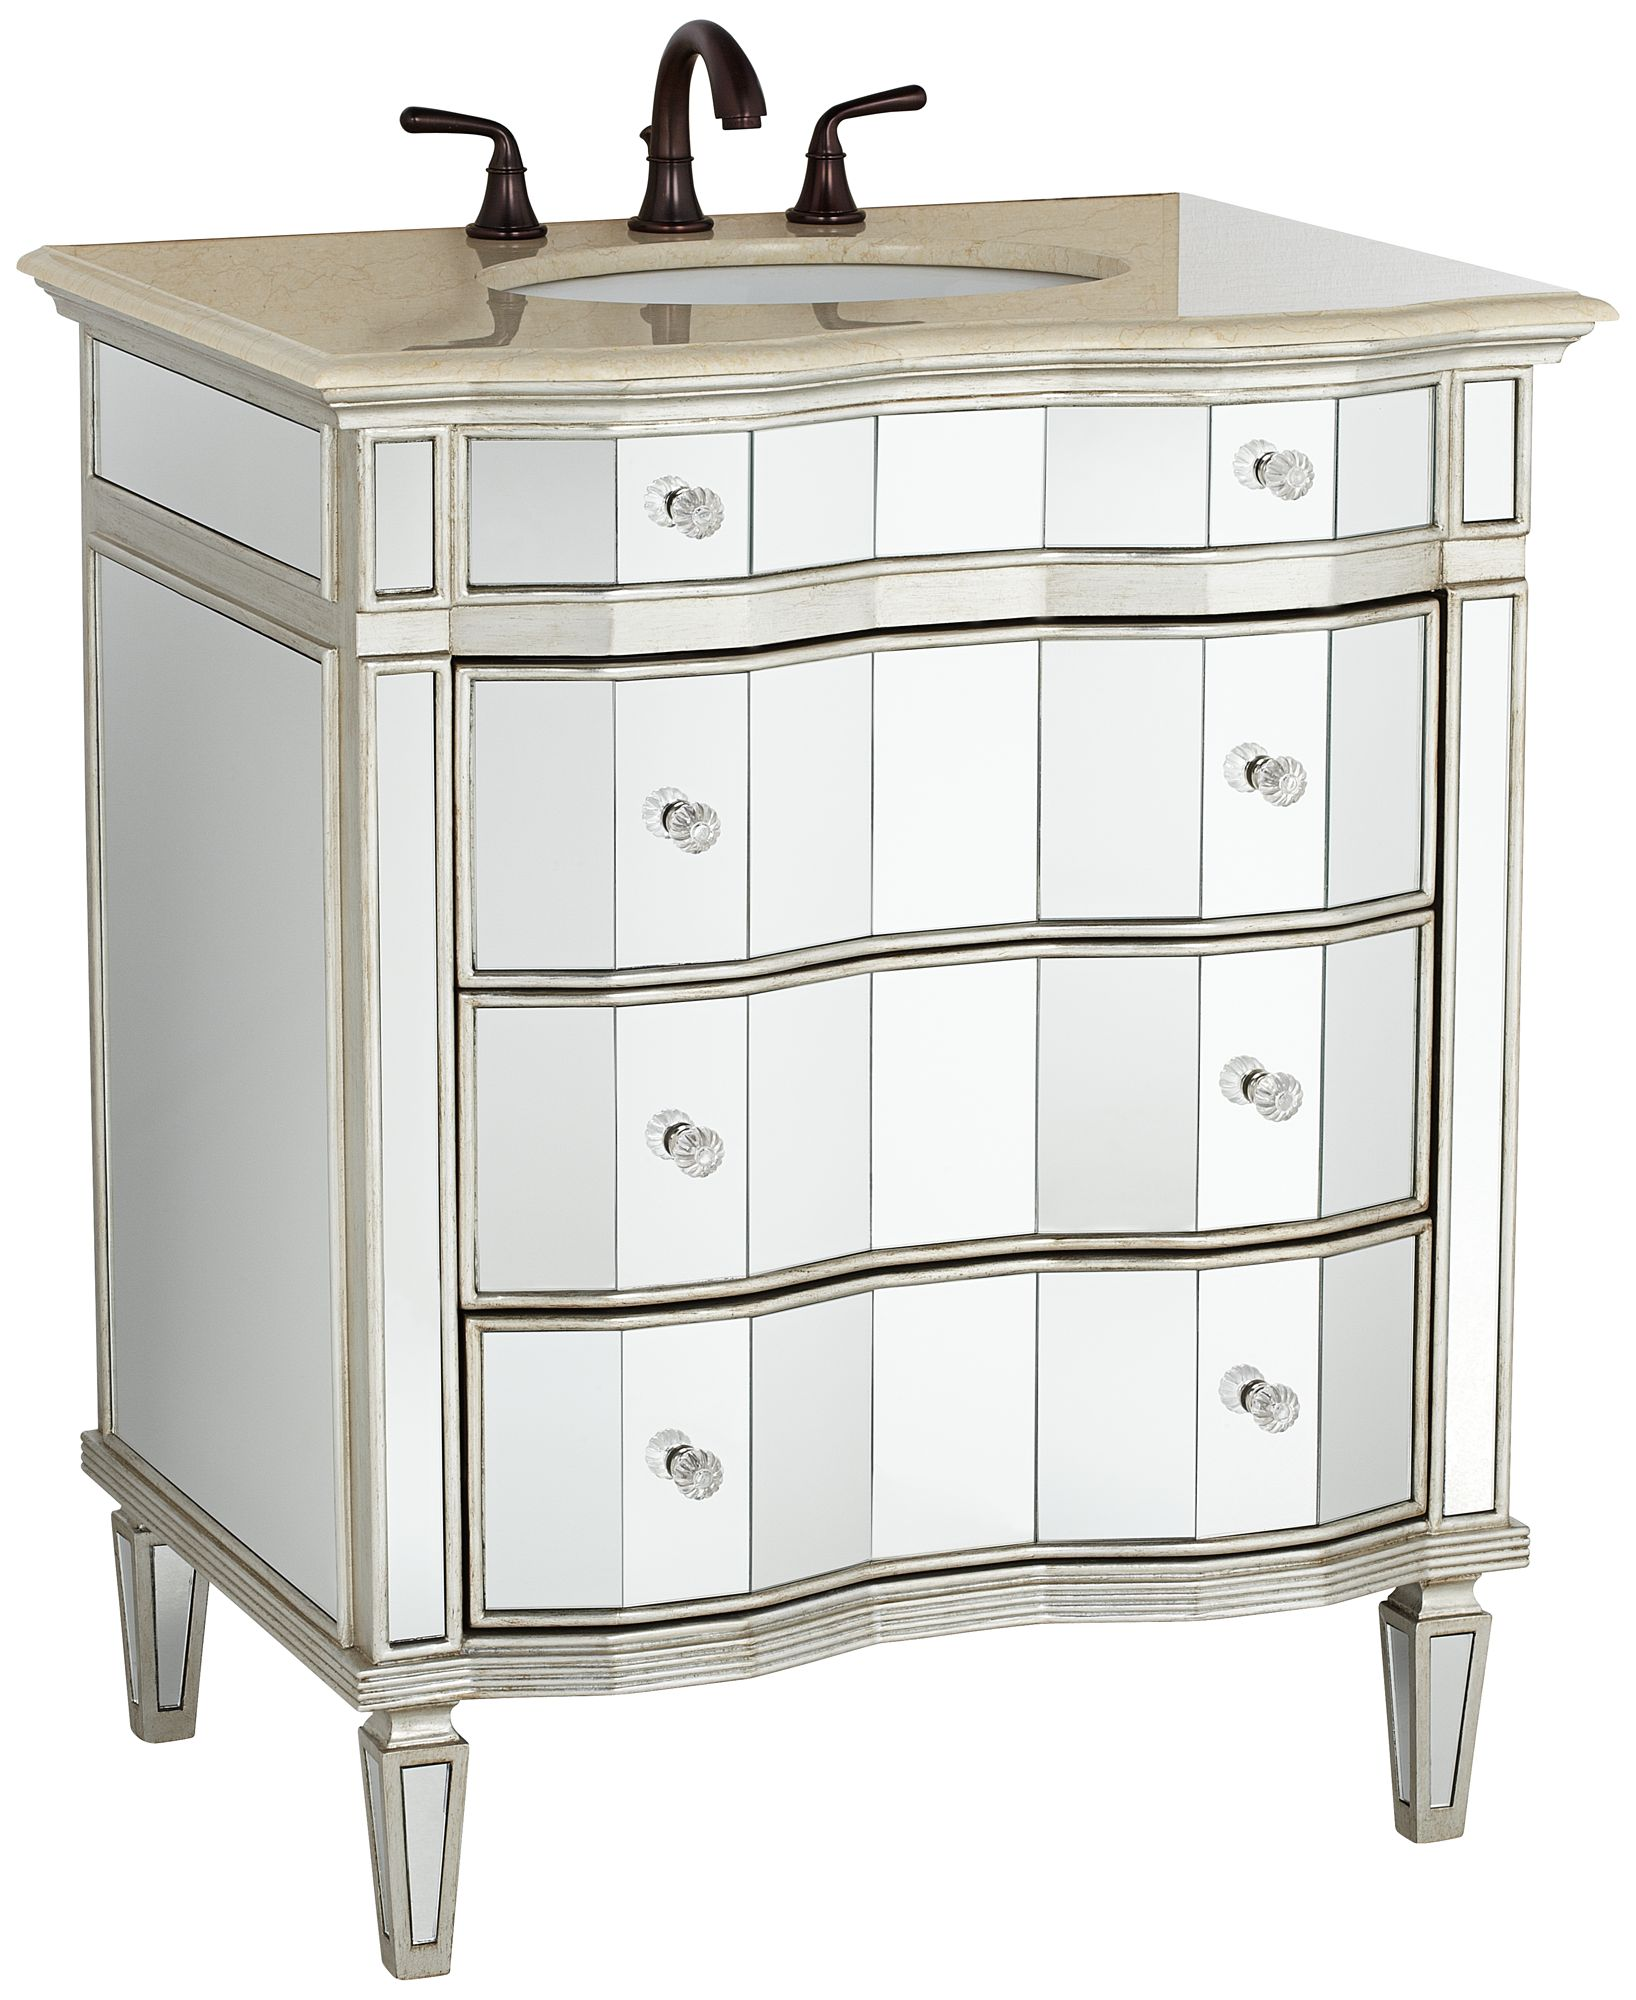 Gentil Kaylee Mirrored Bathroom Sink Vanity